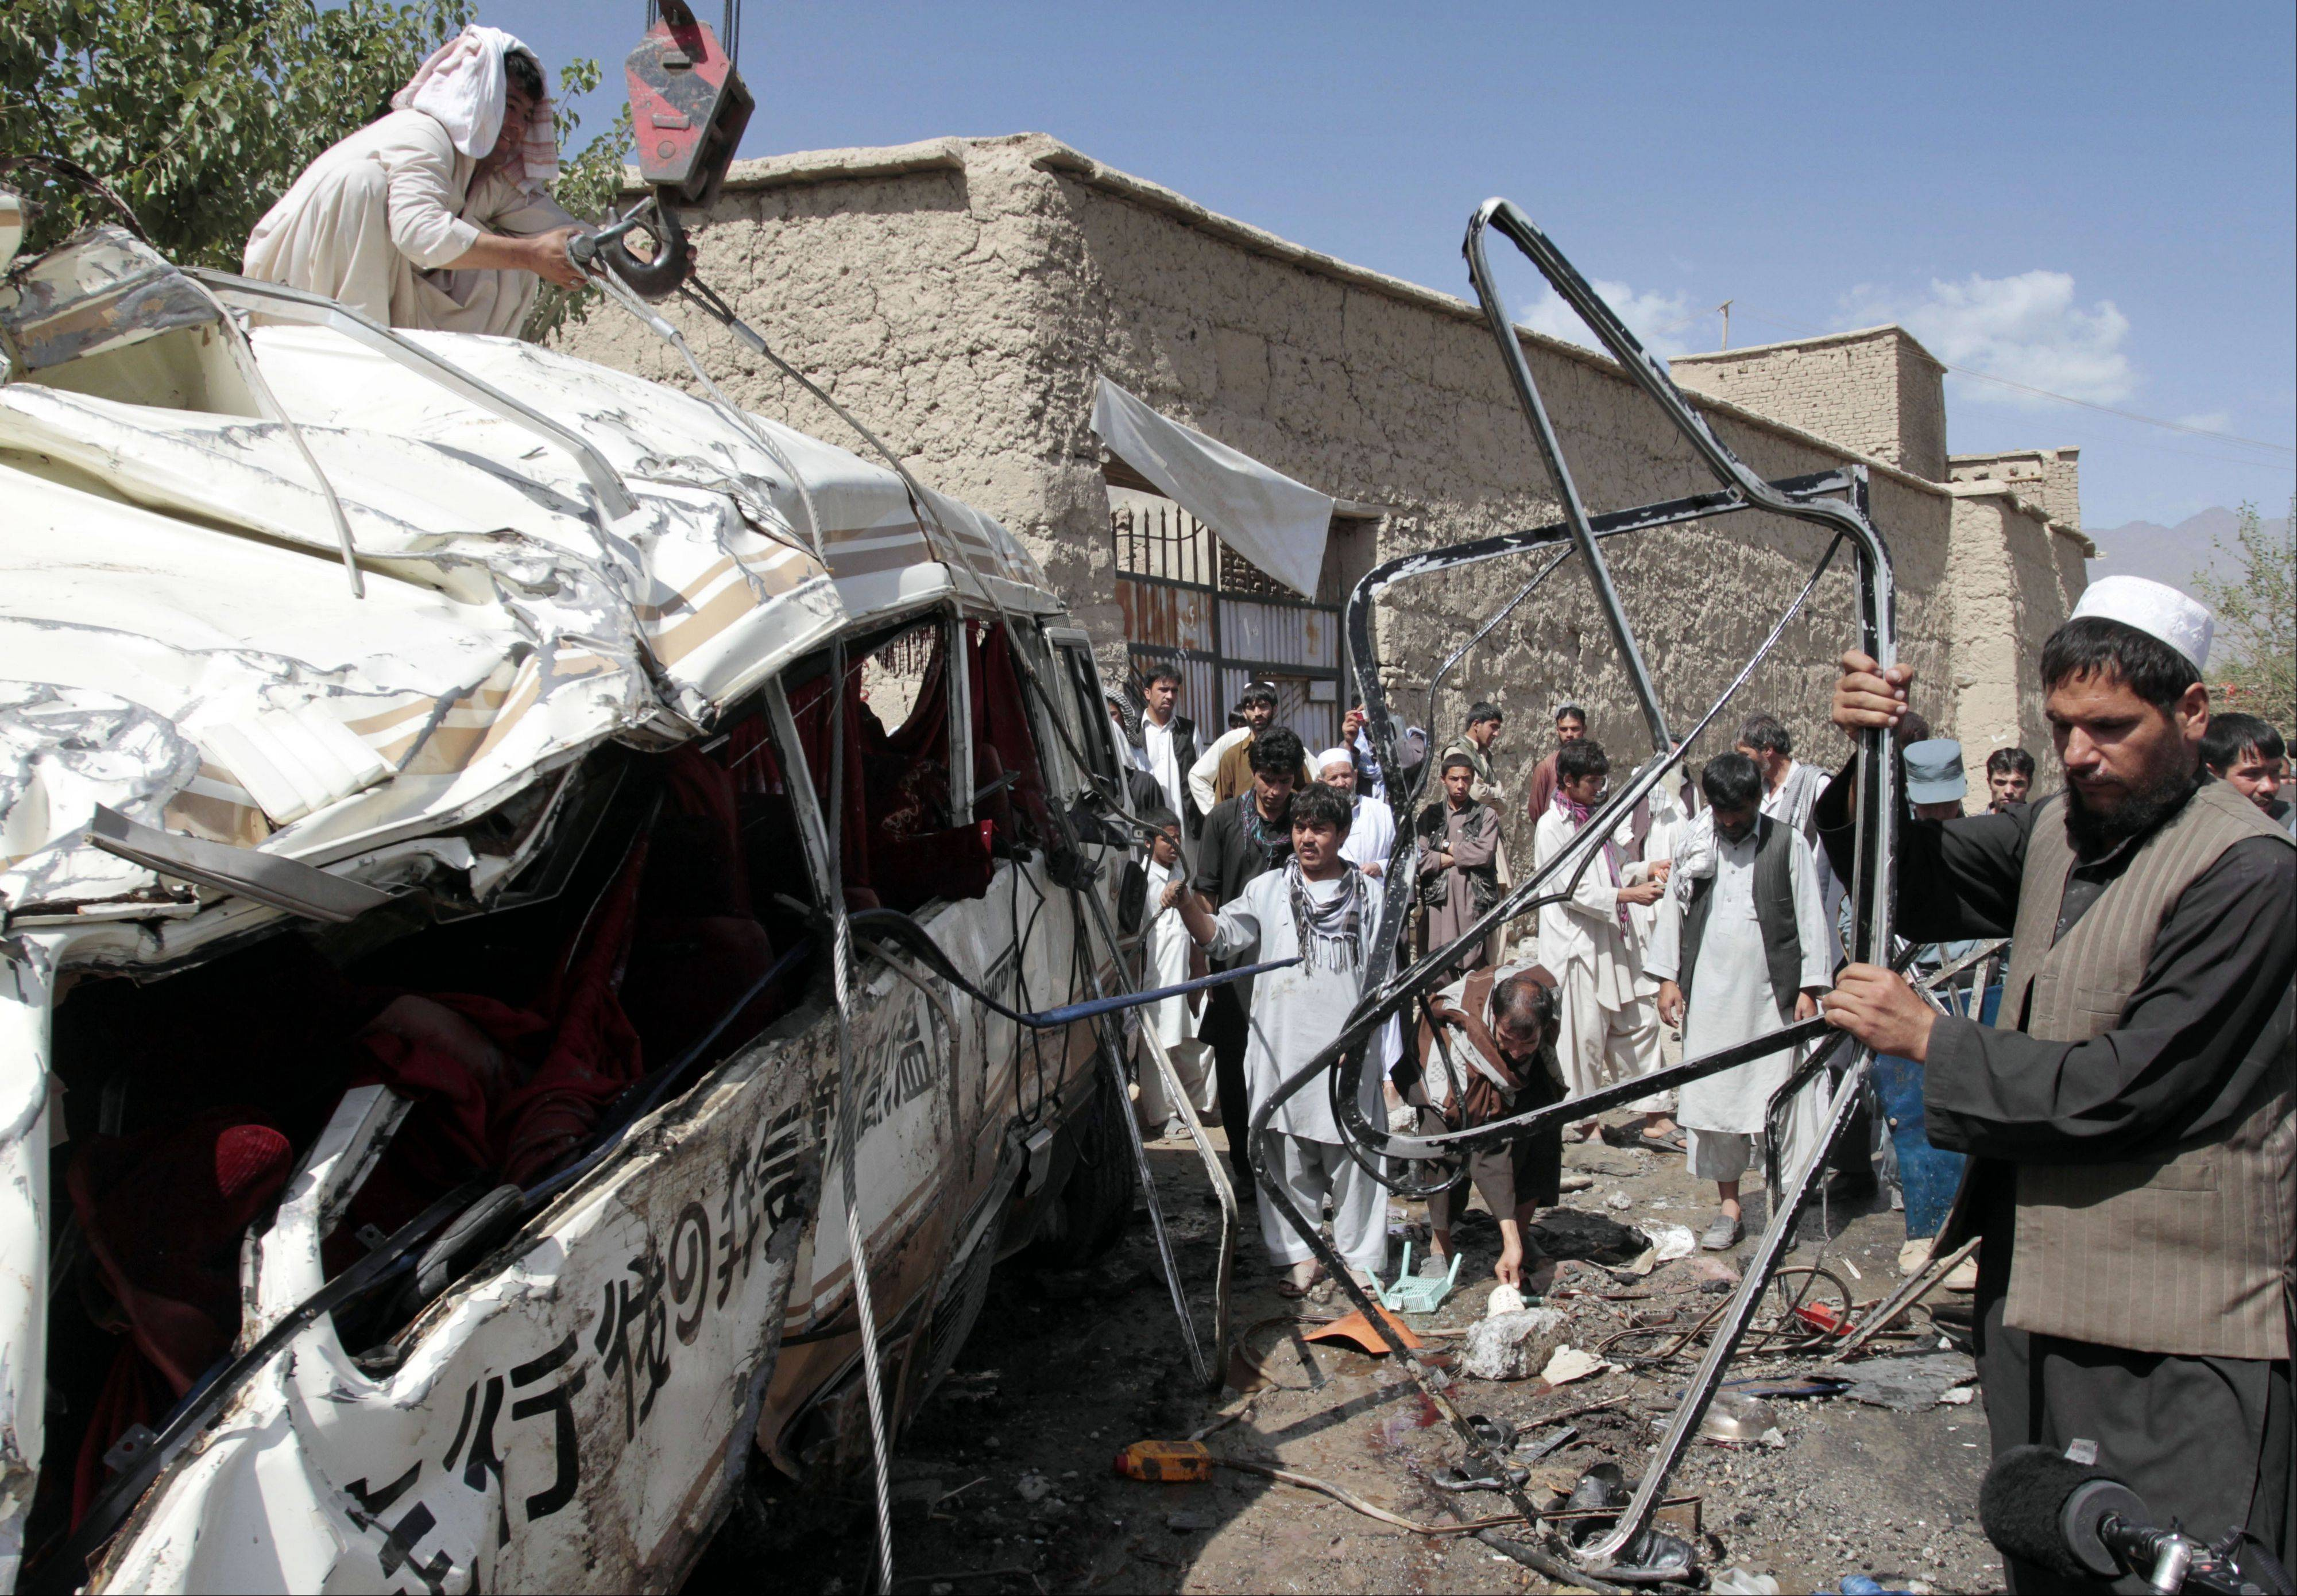 Associated Press/Aug. 7, 2012Men collect parts of a damaged bus, which was hit by a remote control bomb on the outskirts of Kabul, Afghanistan.